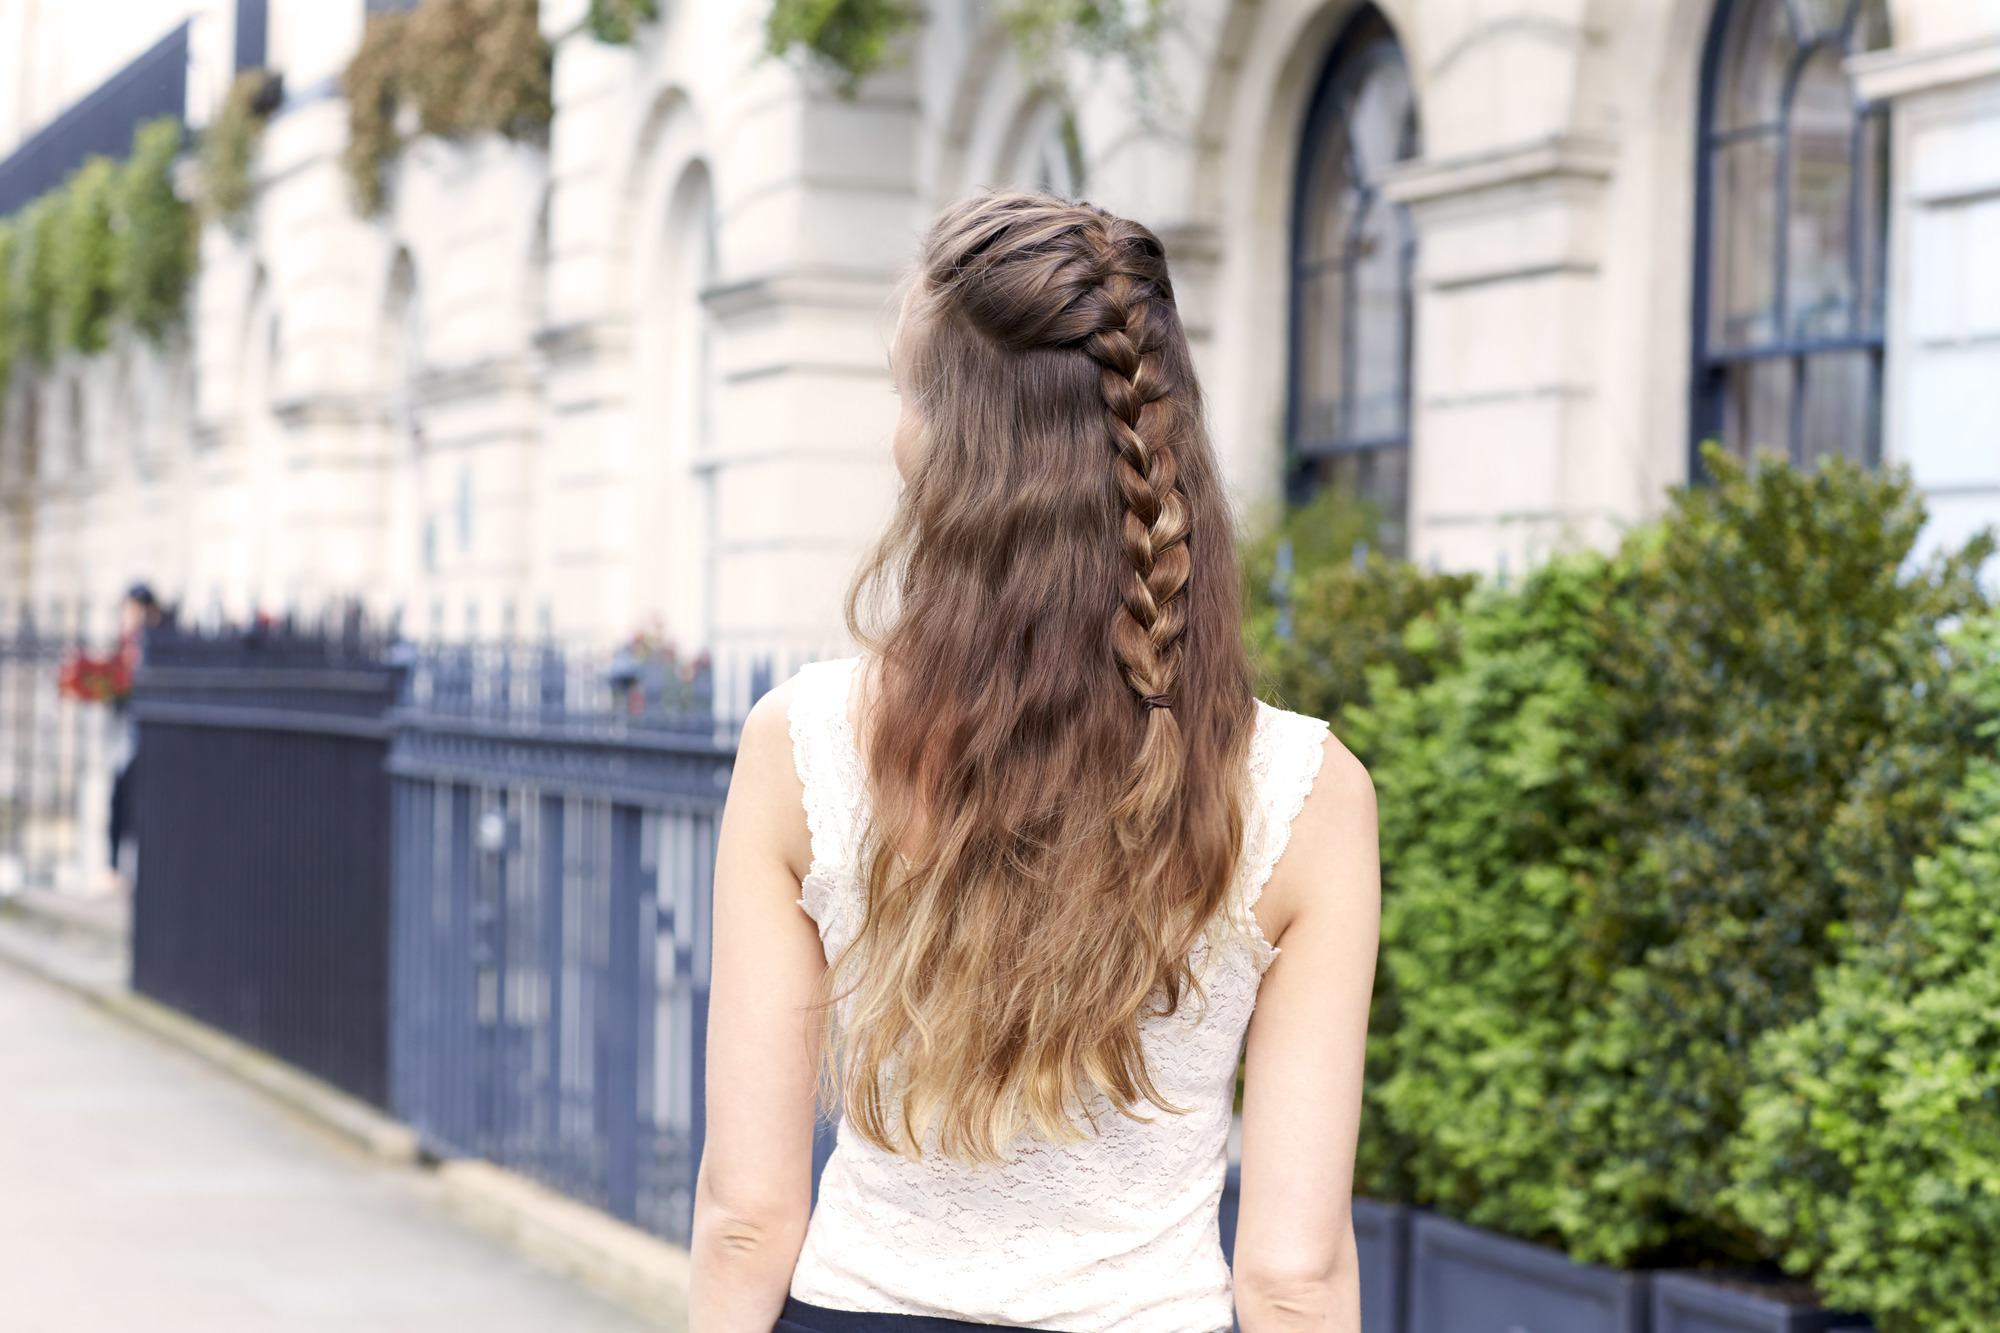 Flat hair fixes woman with braid and curls on street with long brunette hair